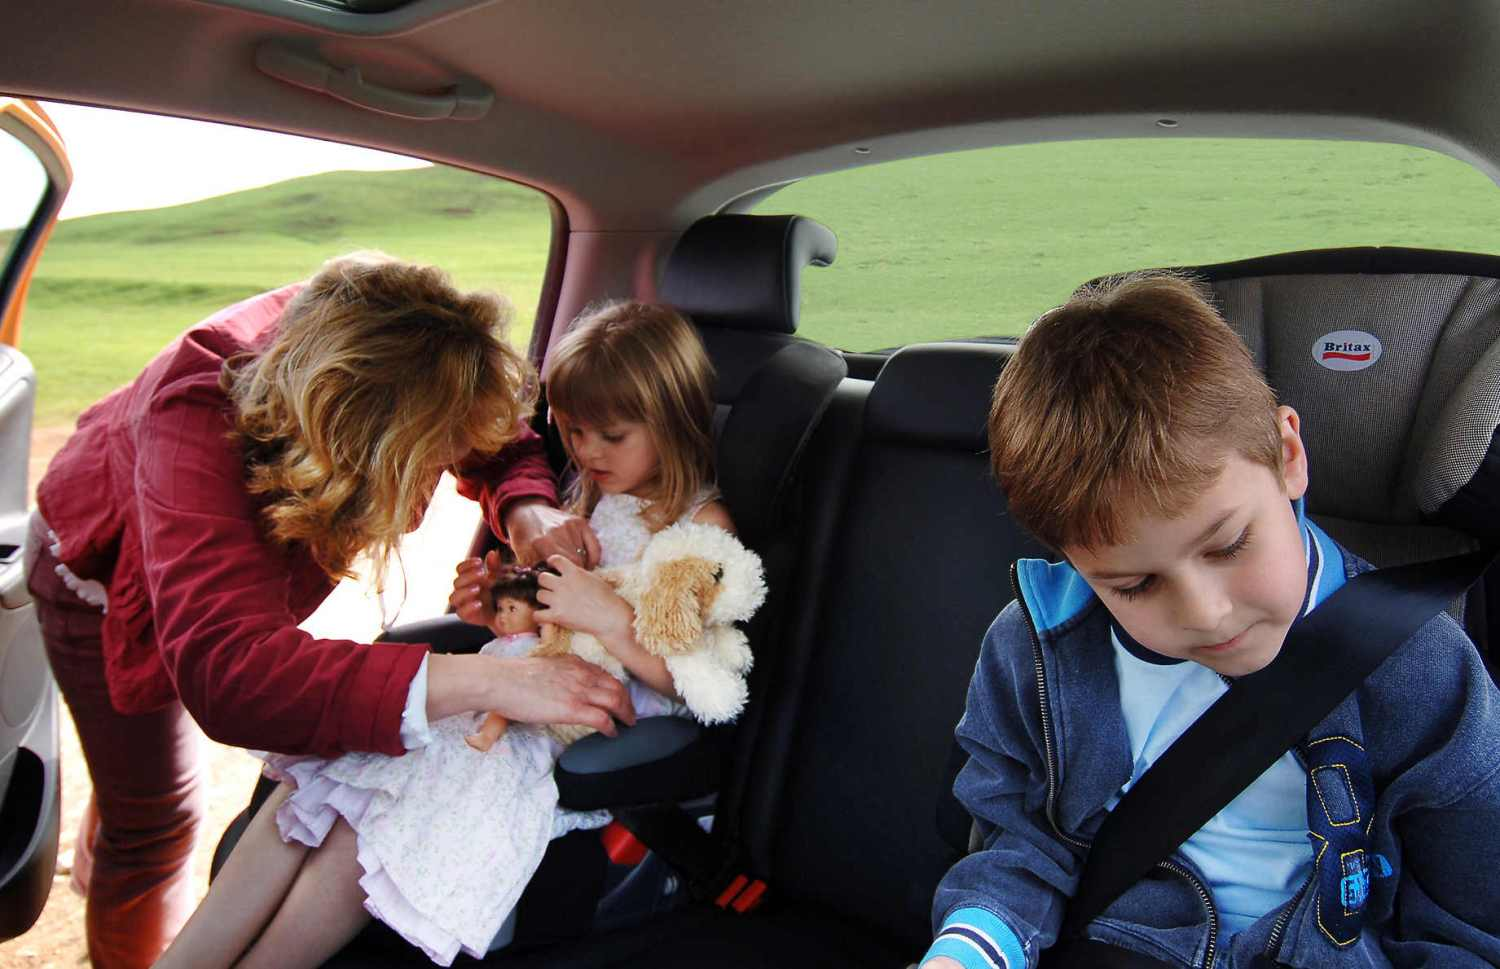 Children in car